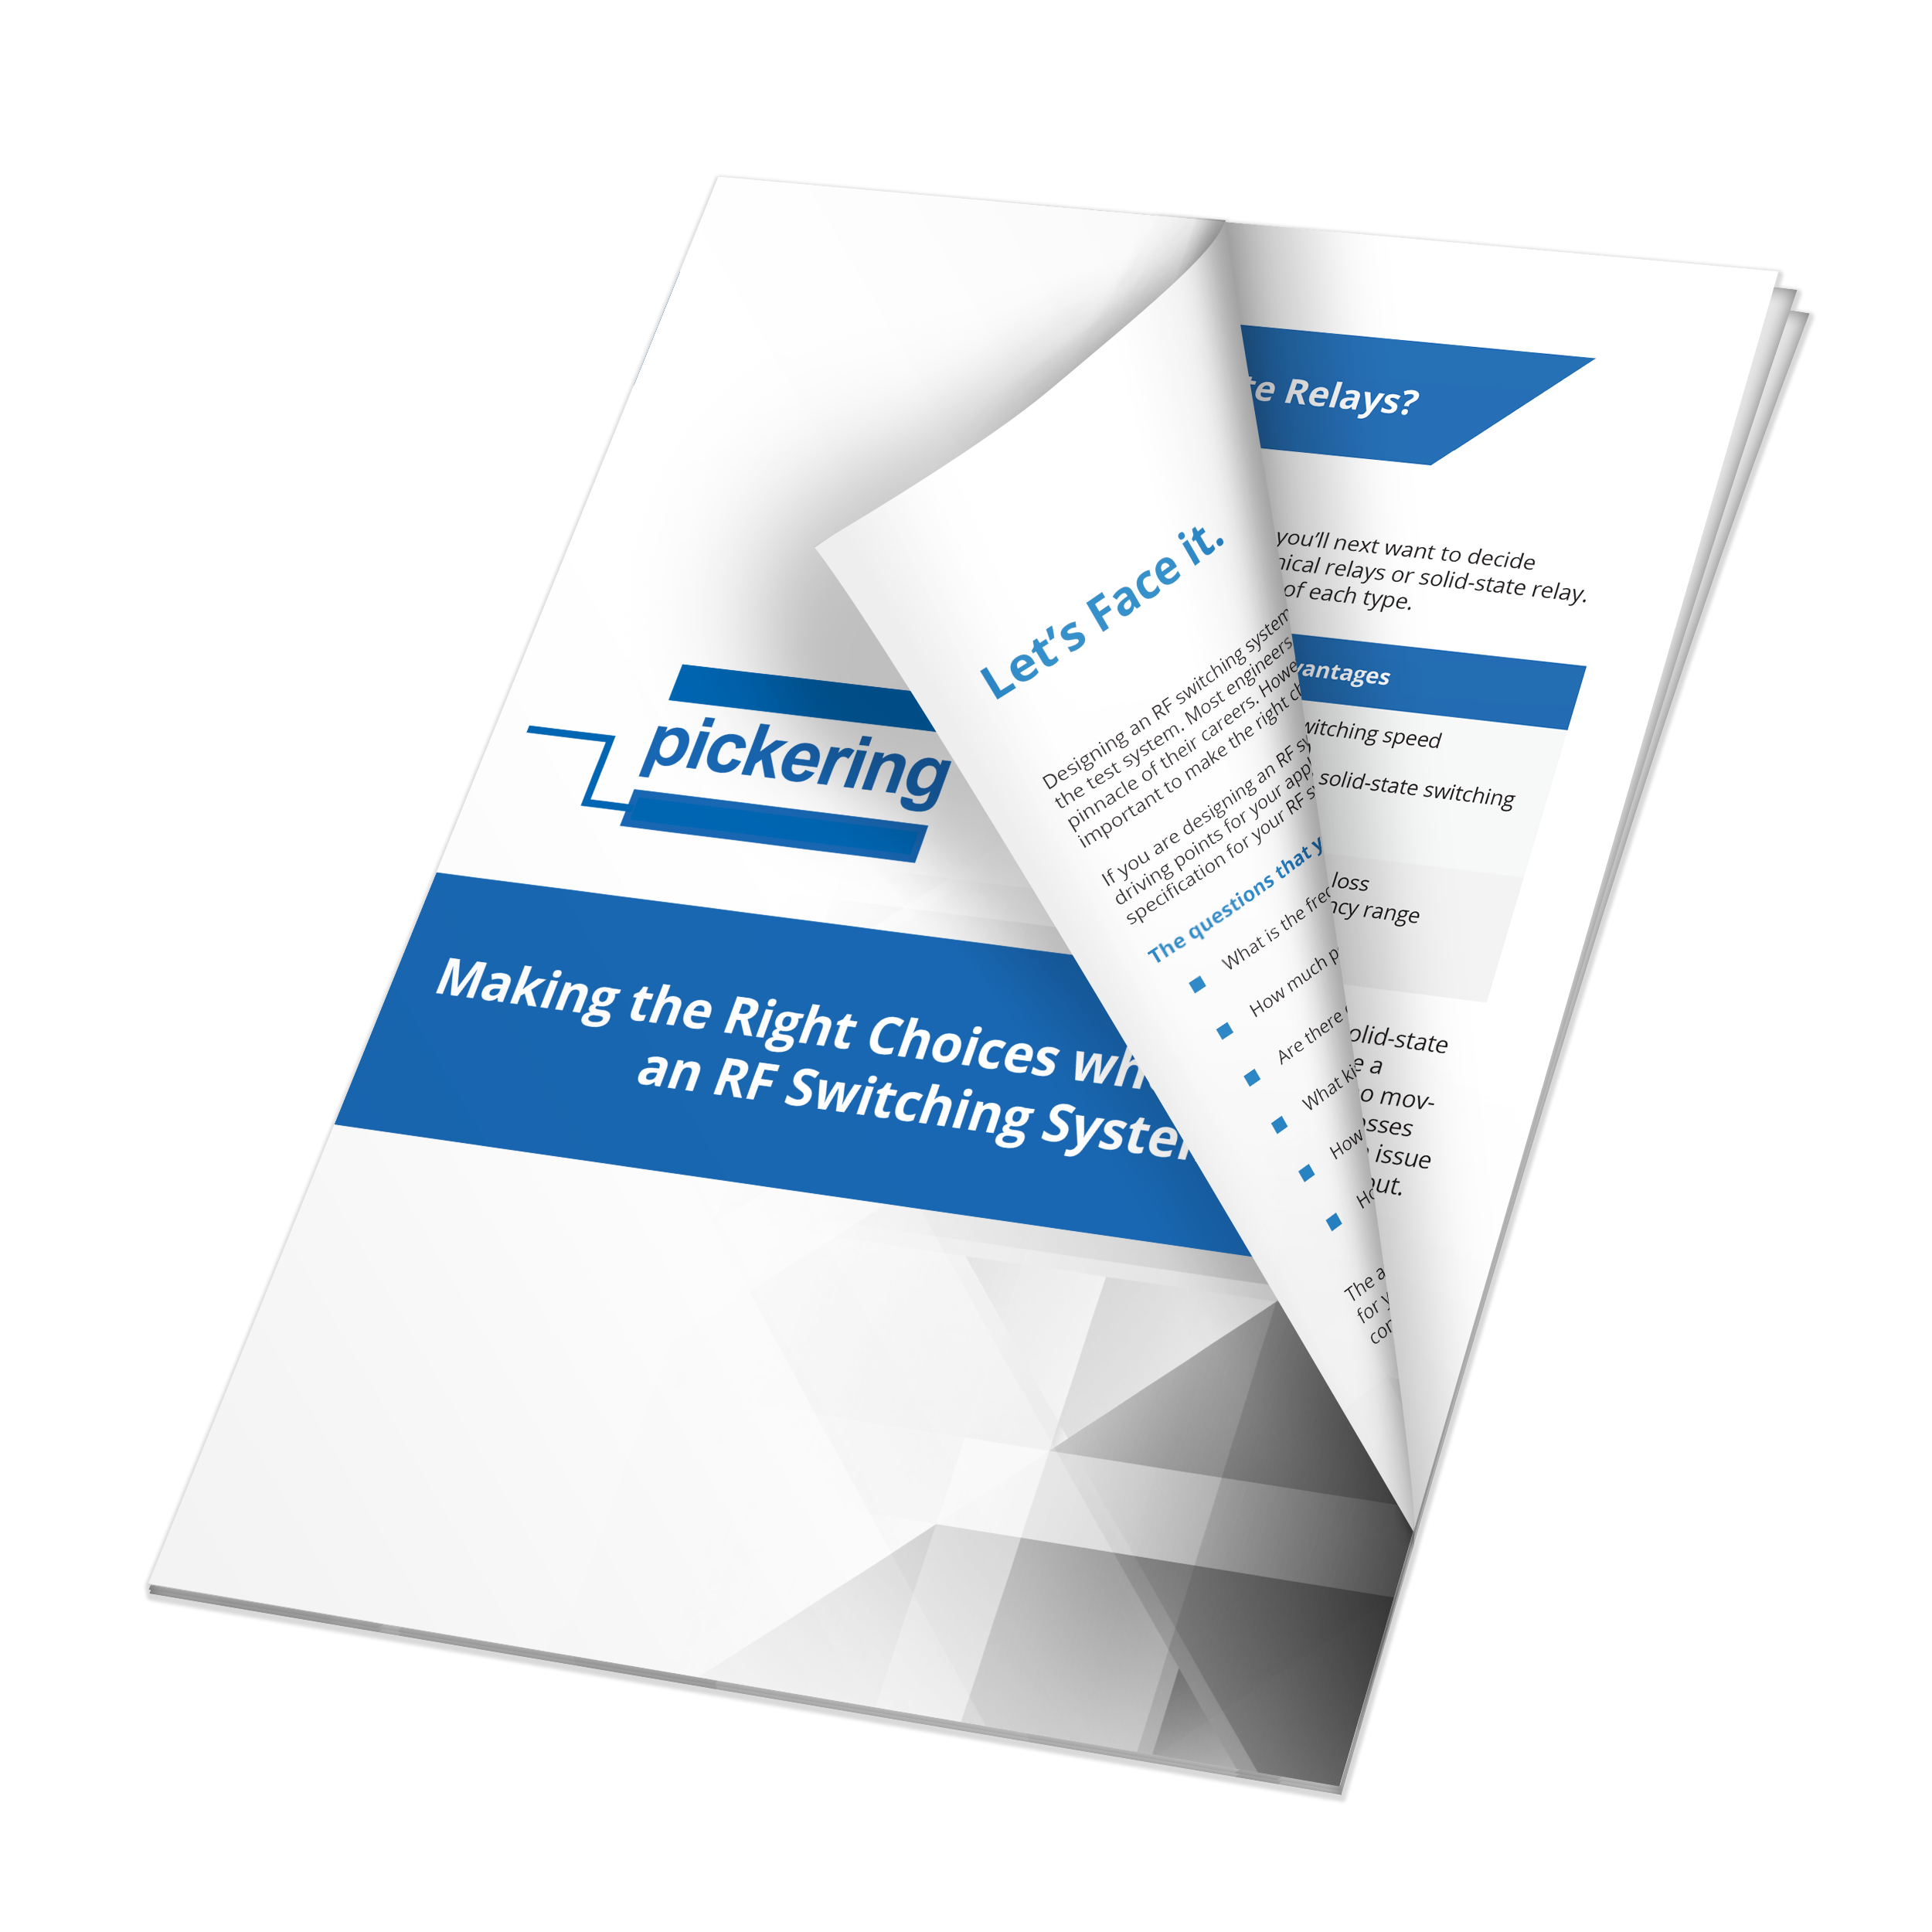 making-the-right-choices-when-specifying-an-rf-switching-system-whitepaper-mockup